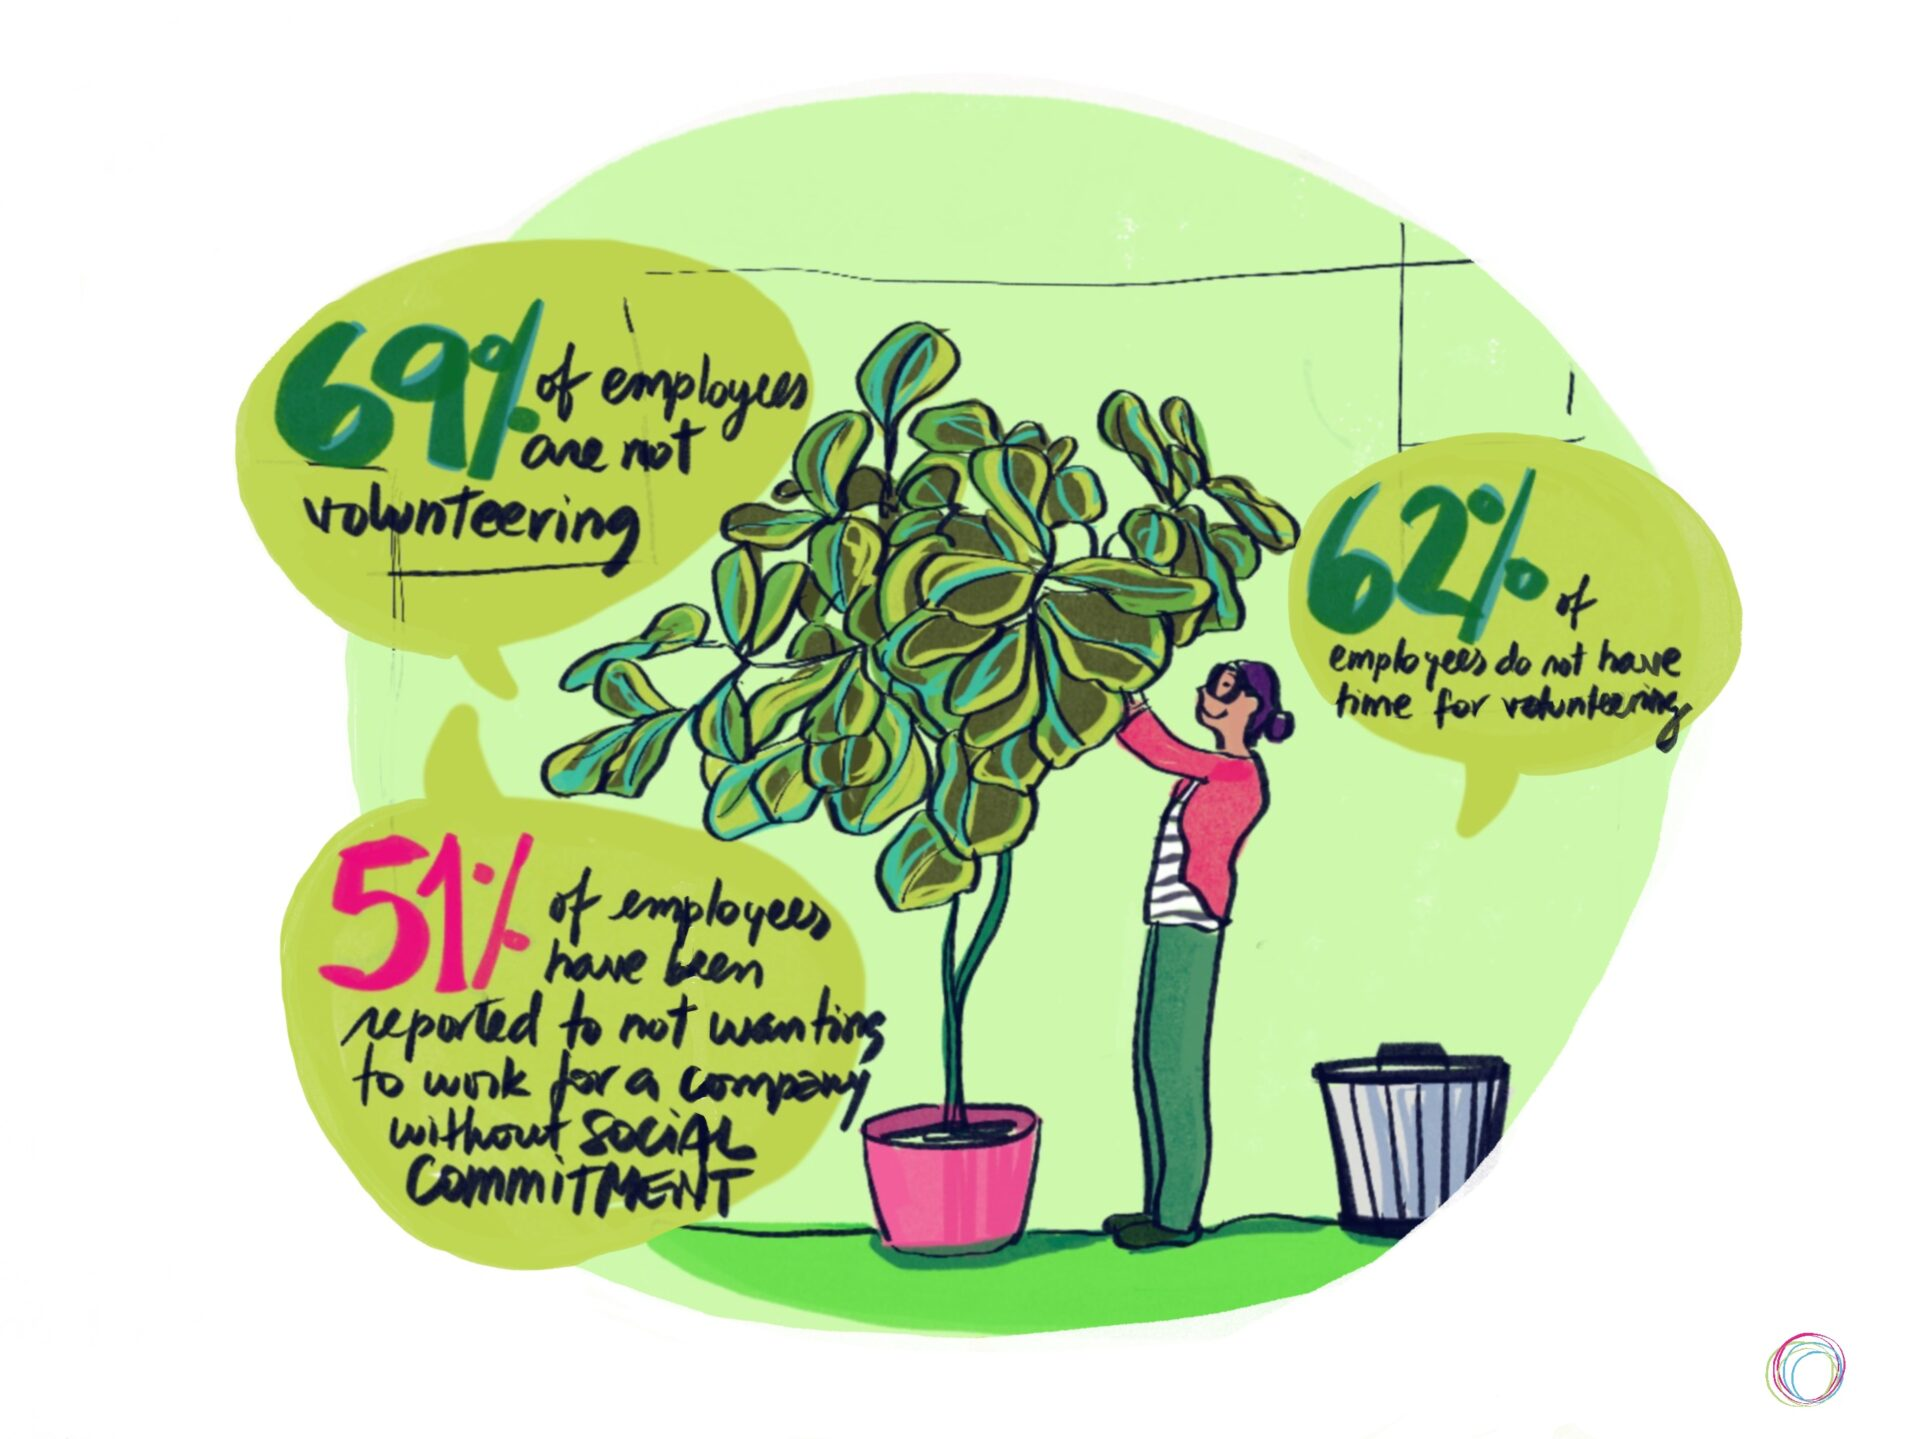 Plants and eco-friendly actions at work are good for us and the planet